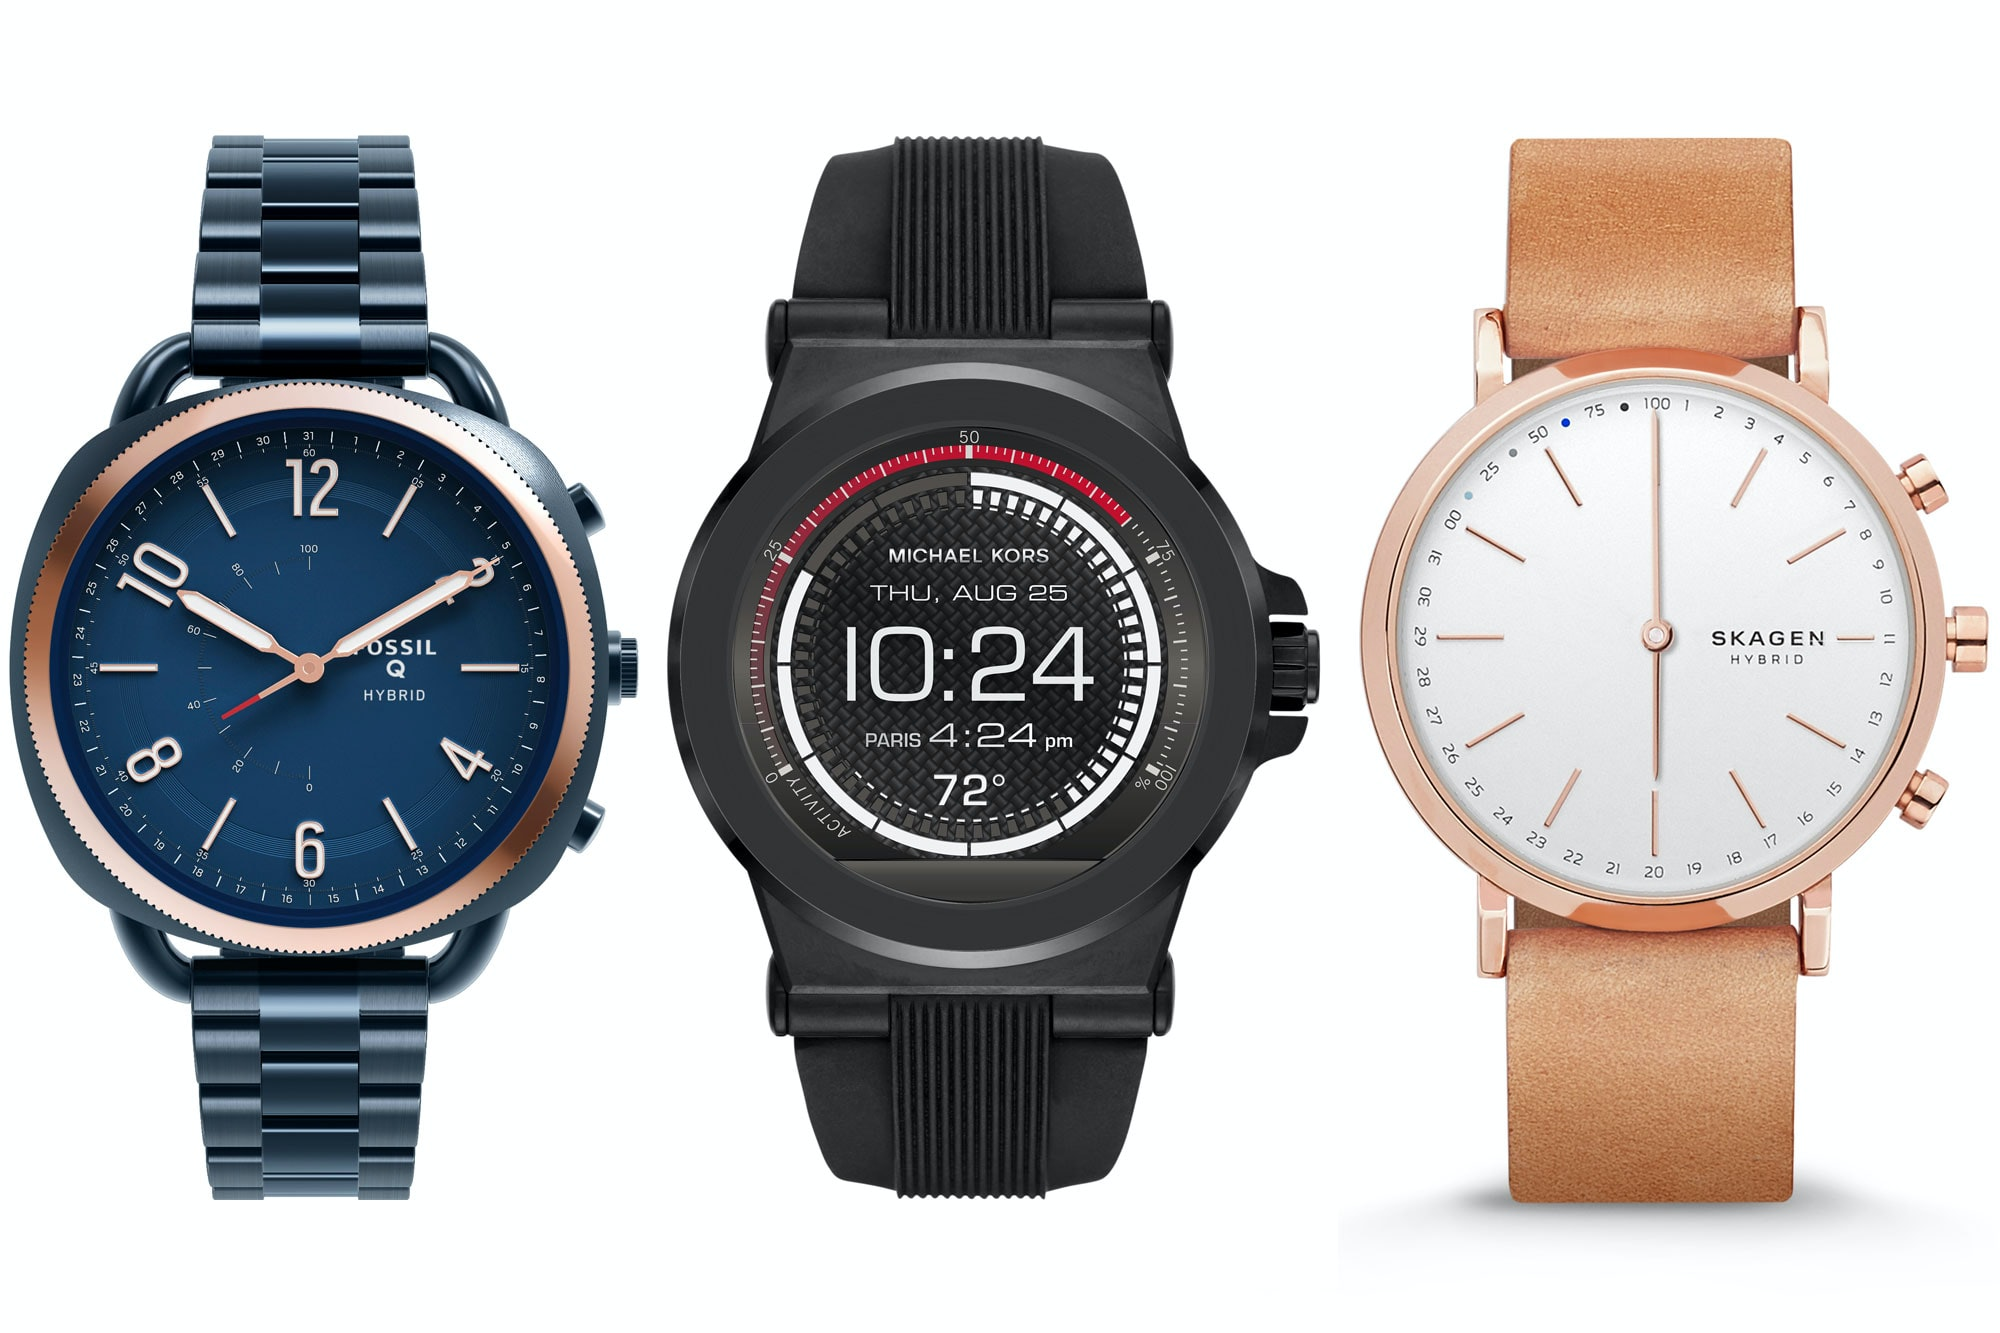 fossil group smartwatches skagen michael kors Business News: Fossil Group Is Doubling The Number Of Wearable Tech Products It Makes To Over 300 Different Watches And Trackers In 2017 Business News: Fossil Group Is Doubling The Number Of Wearable Tech Products It Makes To Over 300 Different Watches And Trackers In 2017 fossil 1